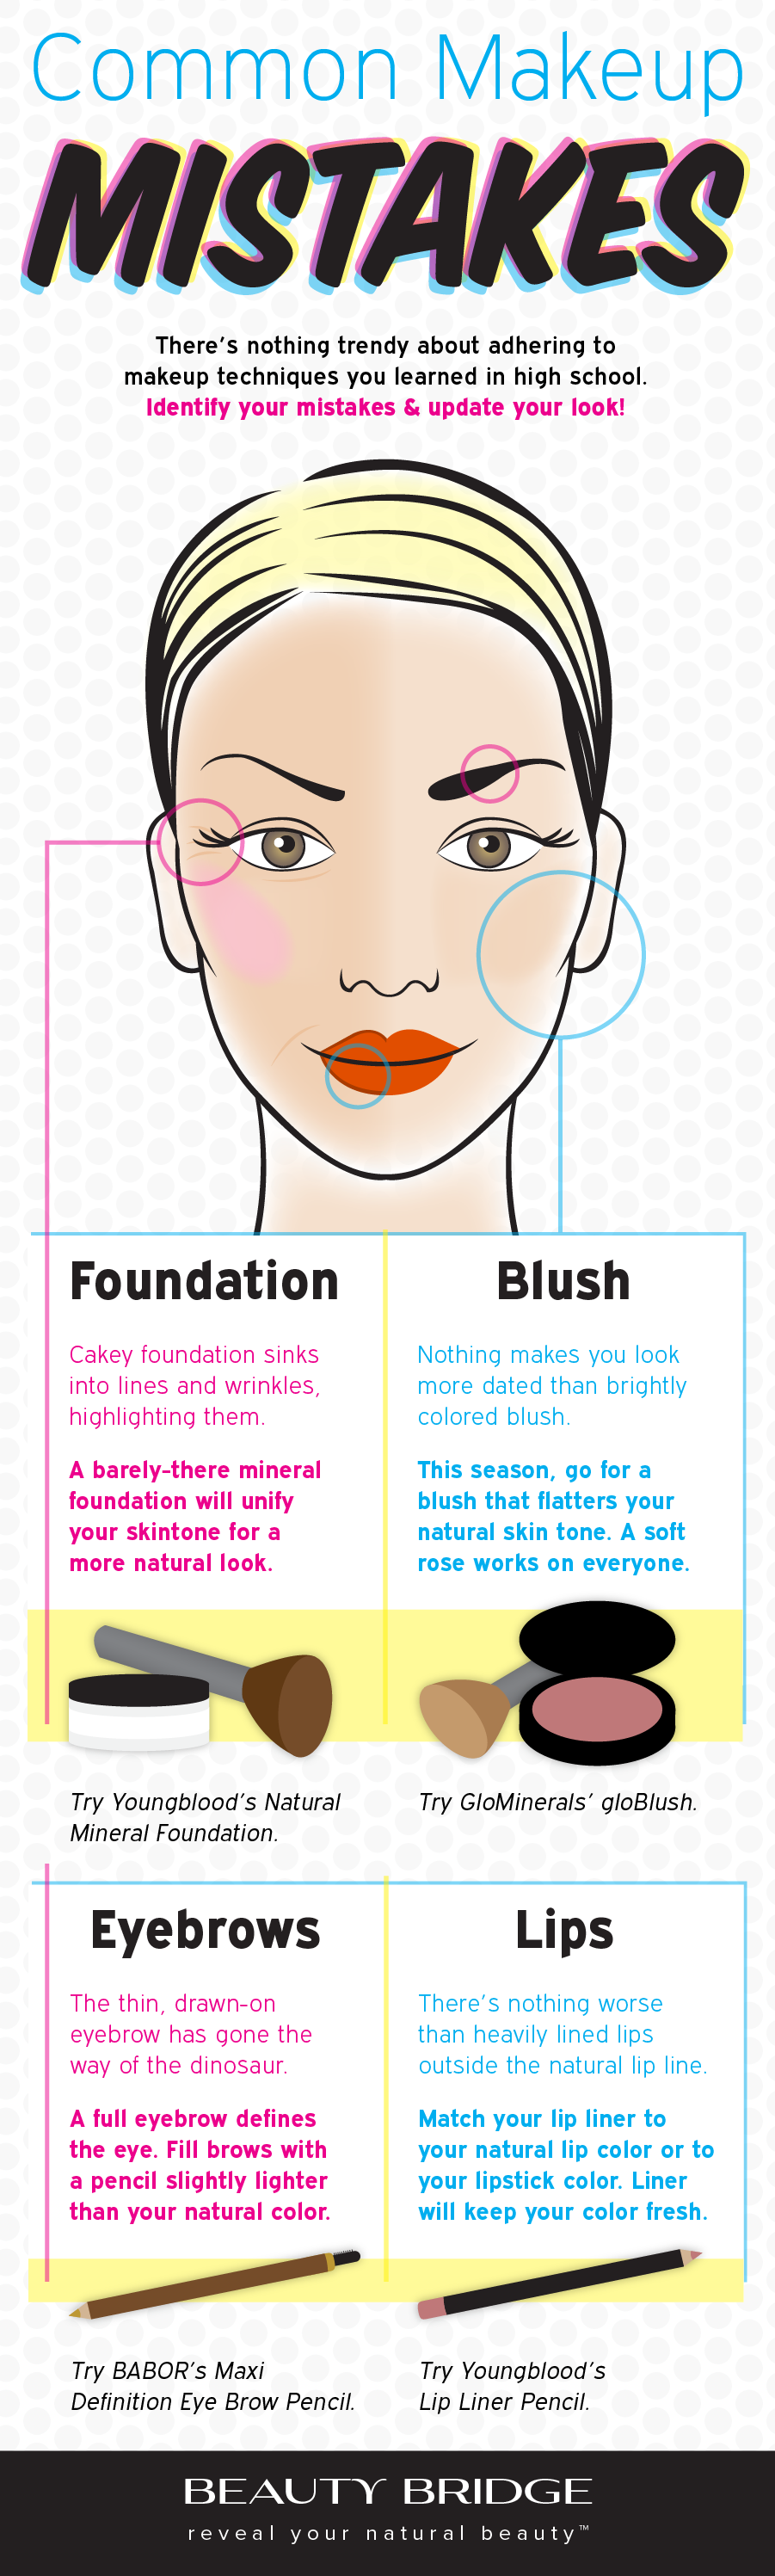 common-makeup-mistakes